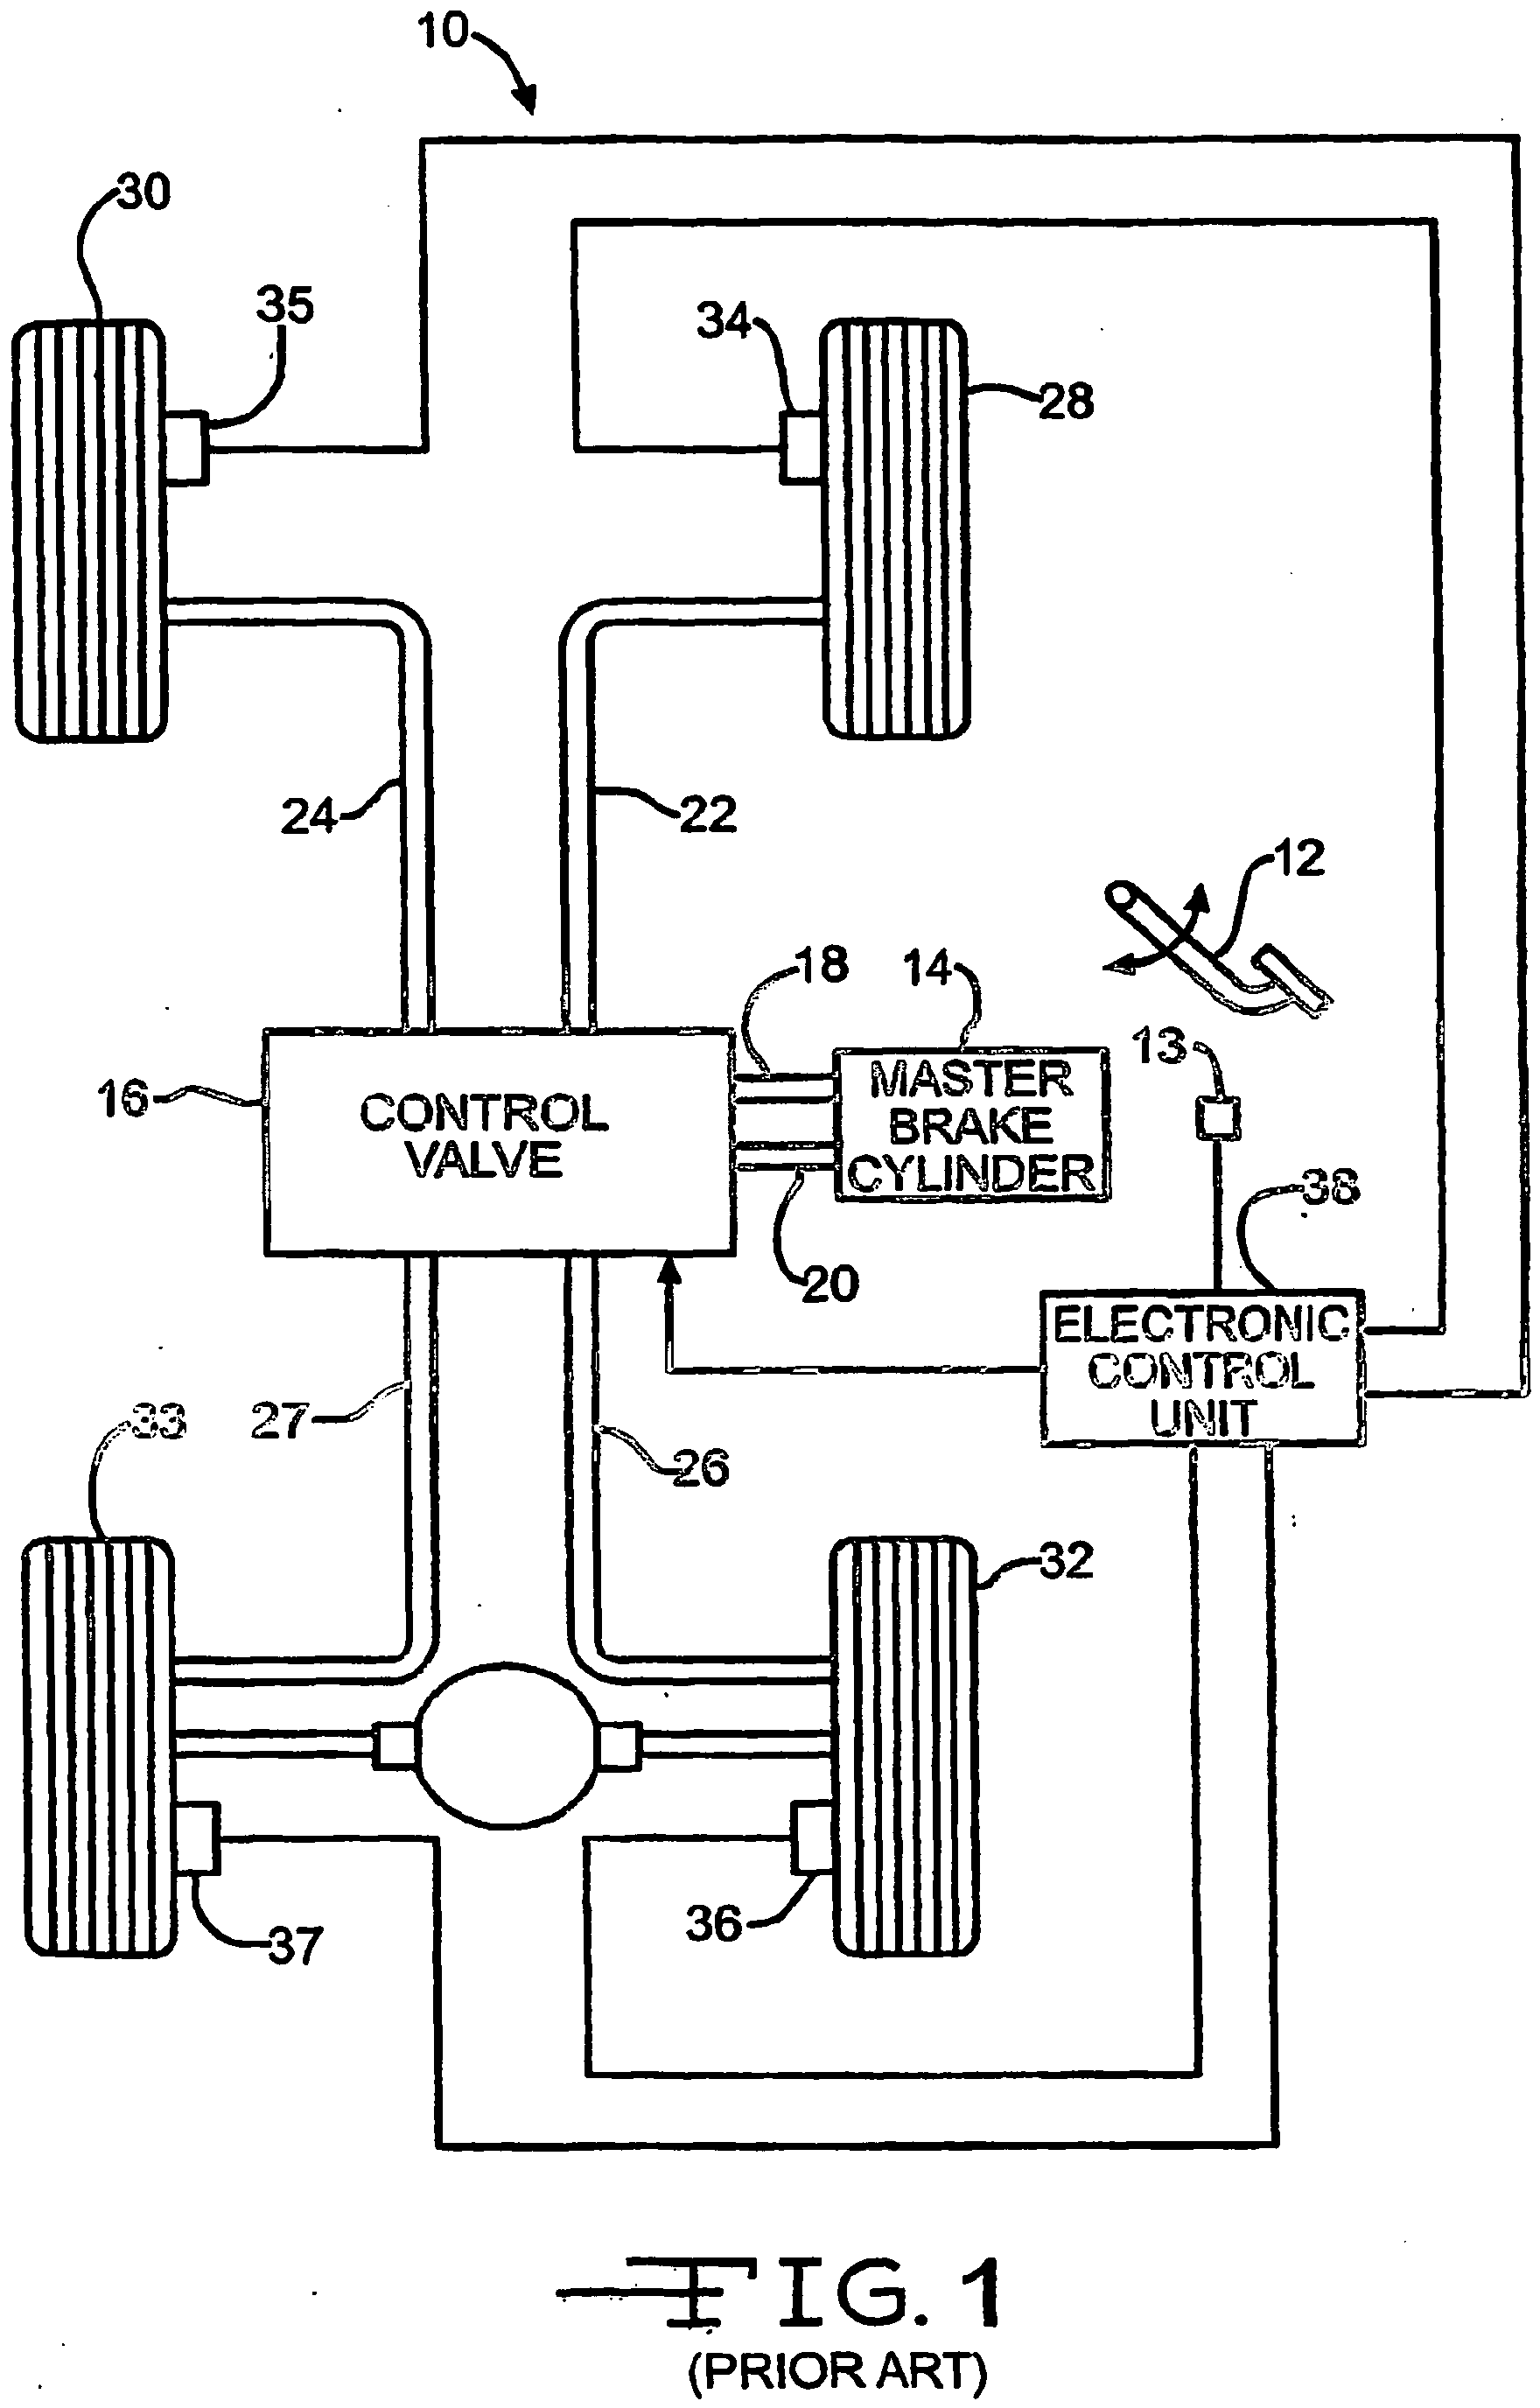 Patent EP1603781B1 - An anti-lock brake system with continuous wheel